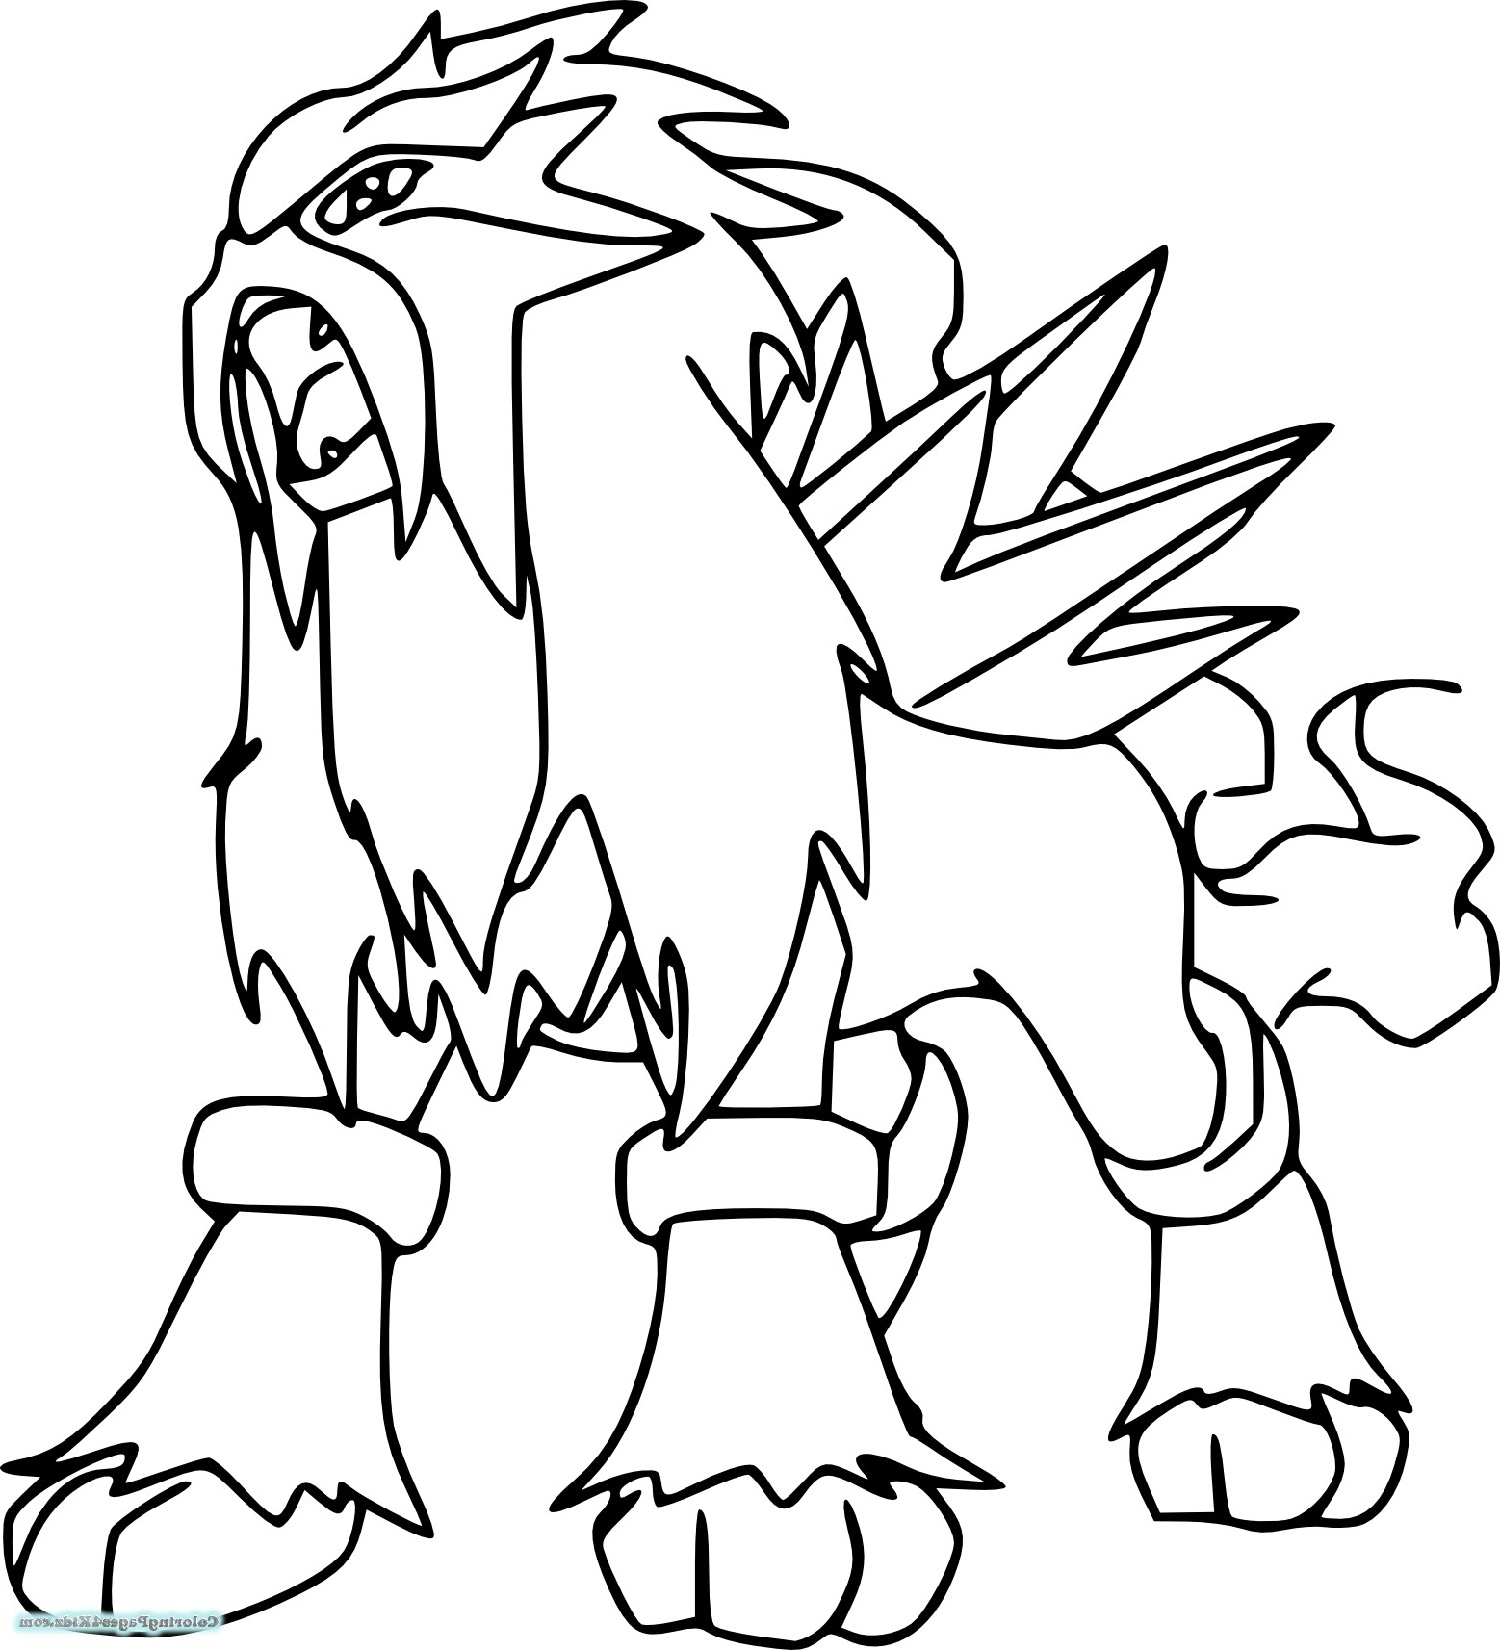 Legendary Pokemon Coloring Pages To Print